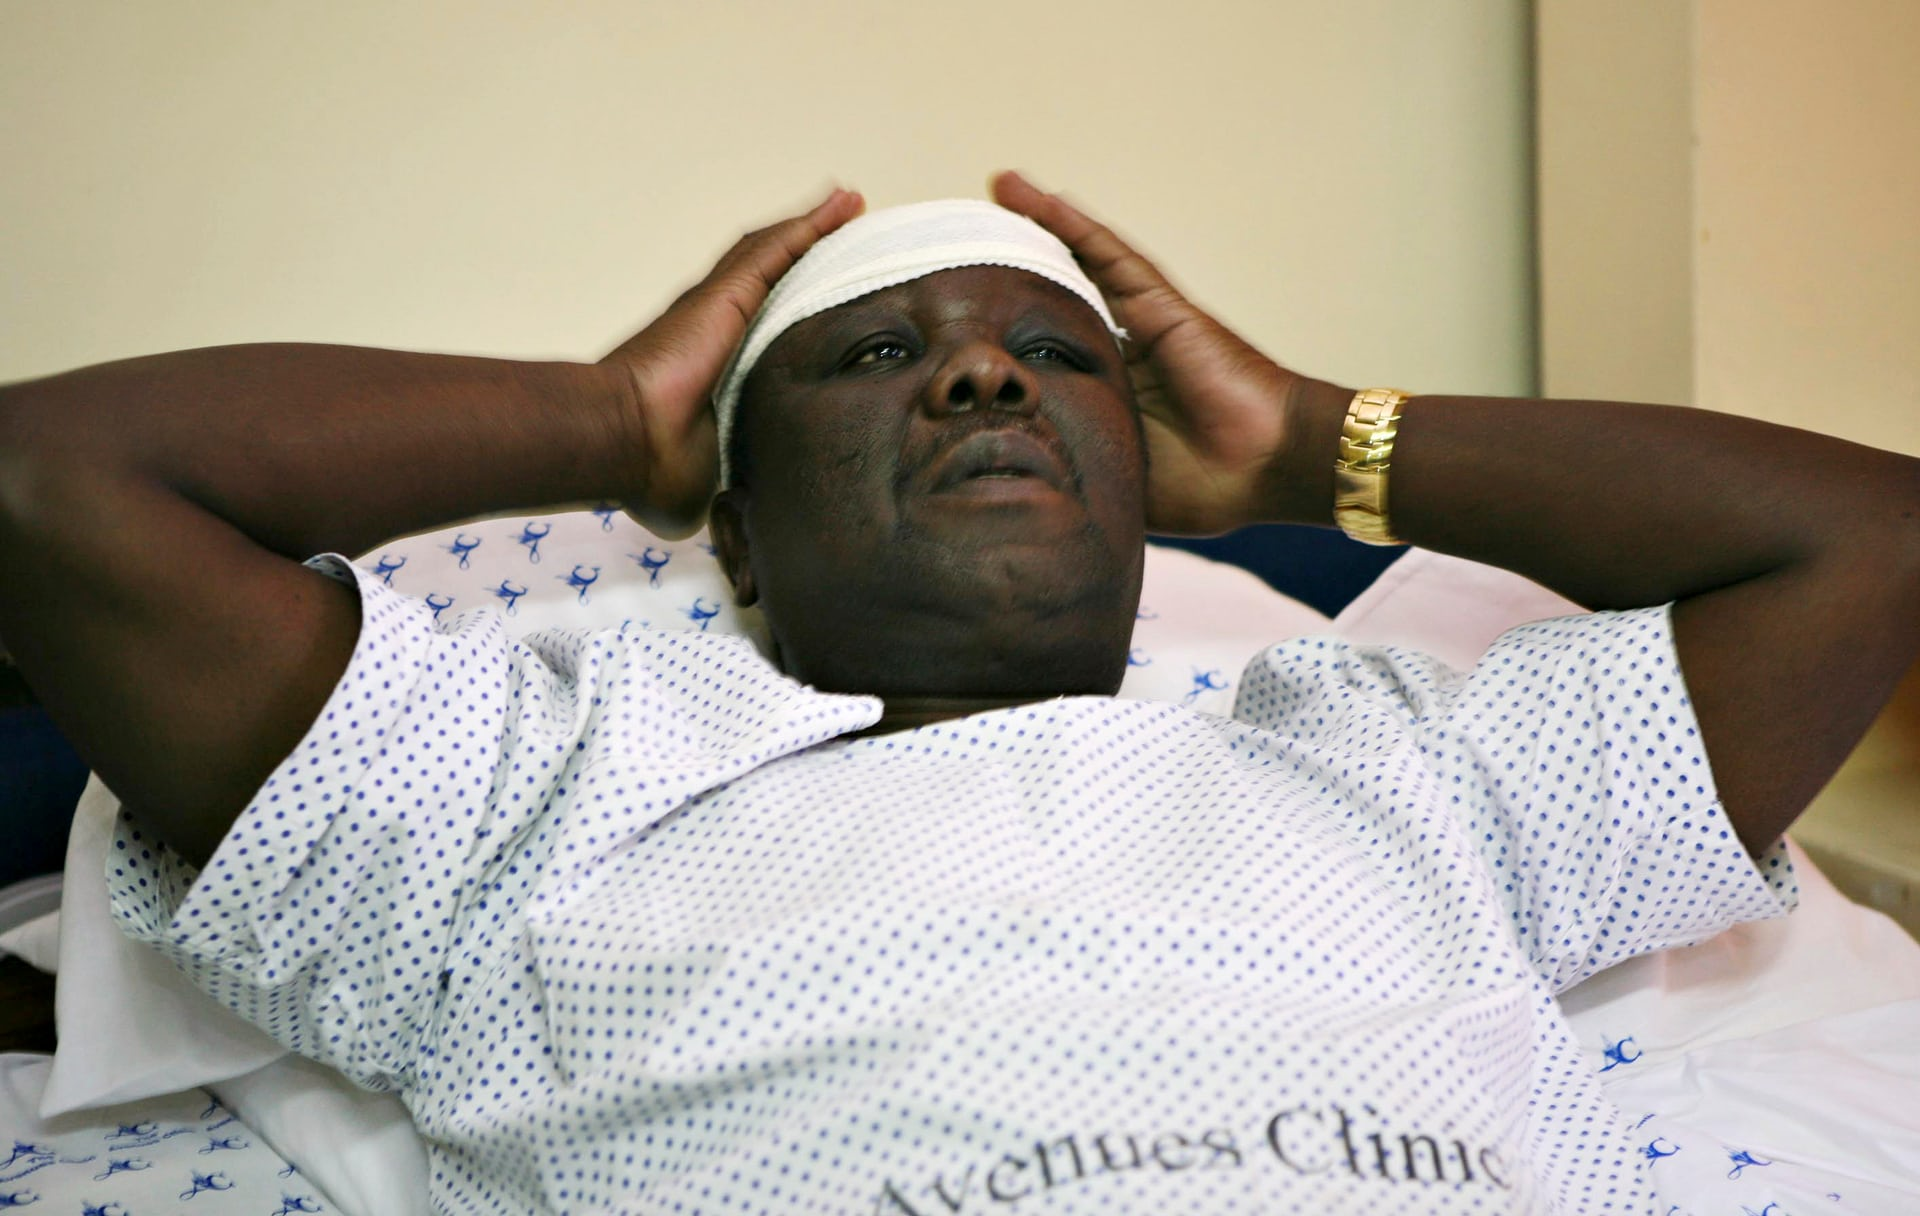 Tsvangirai in hospital after the car accident that killed his wife in March 2009. Photograph: Pool/REUTERS